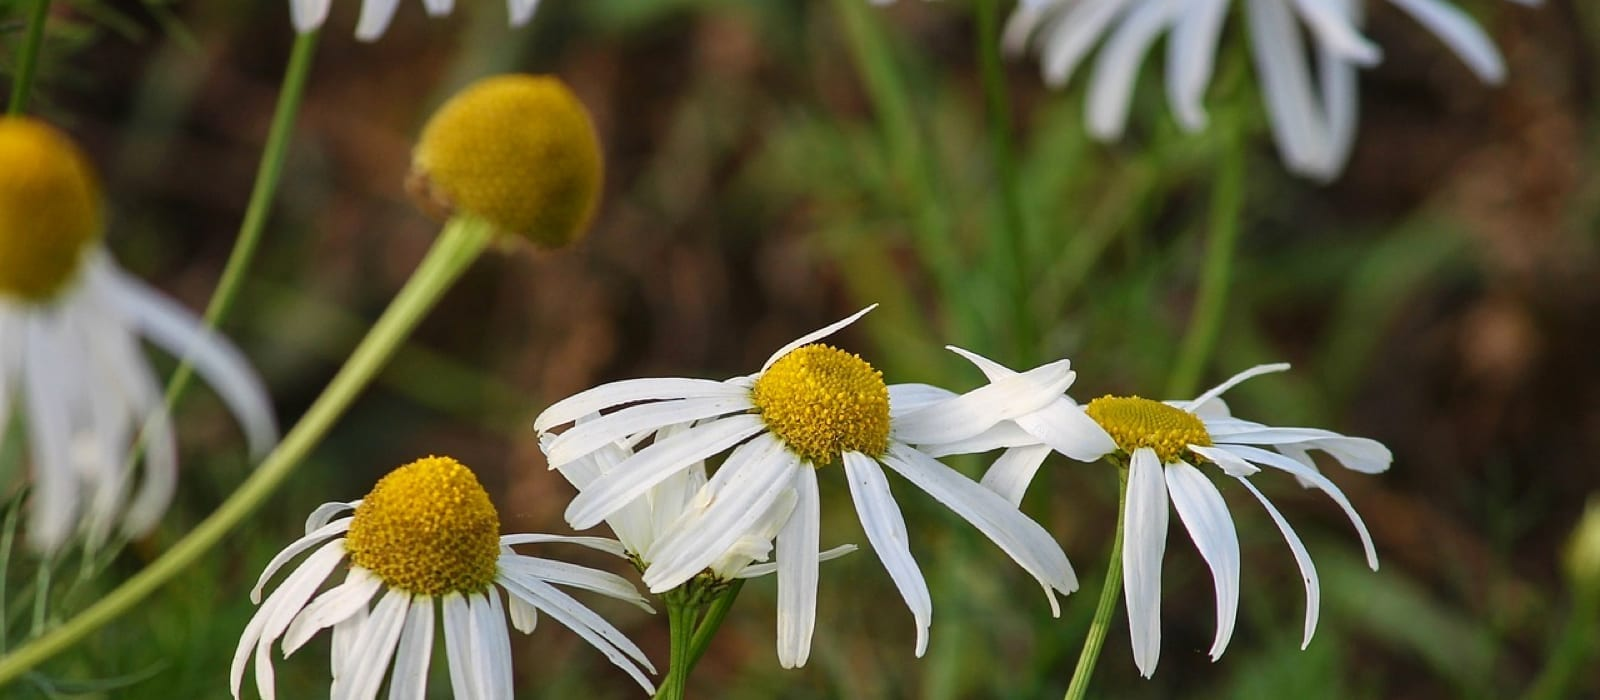 Chamomile Essential Oils for Headaches